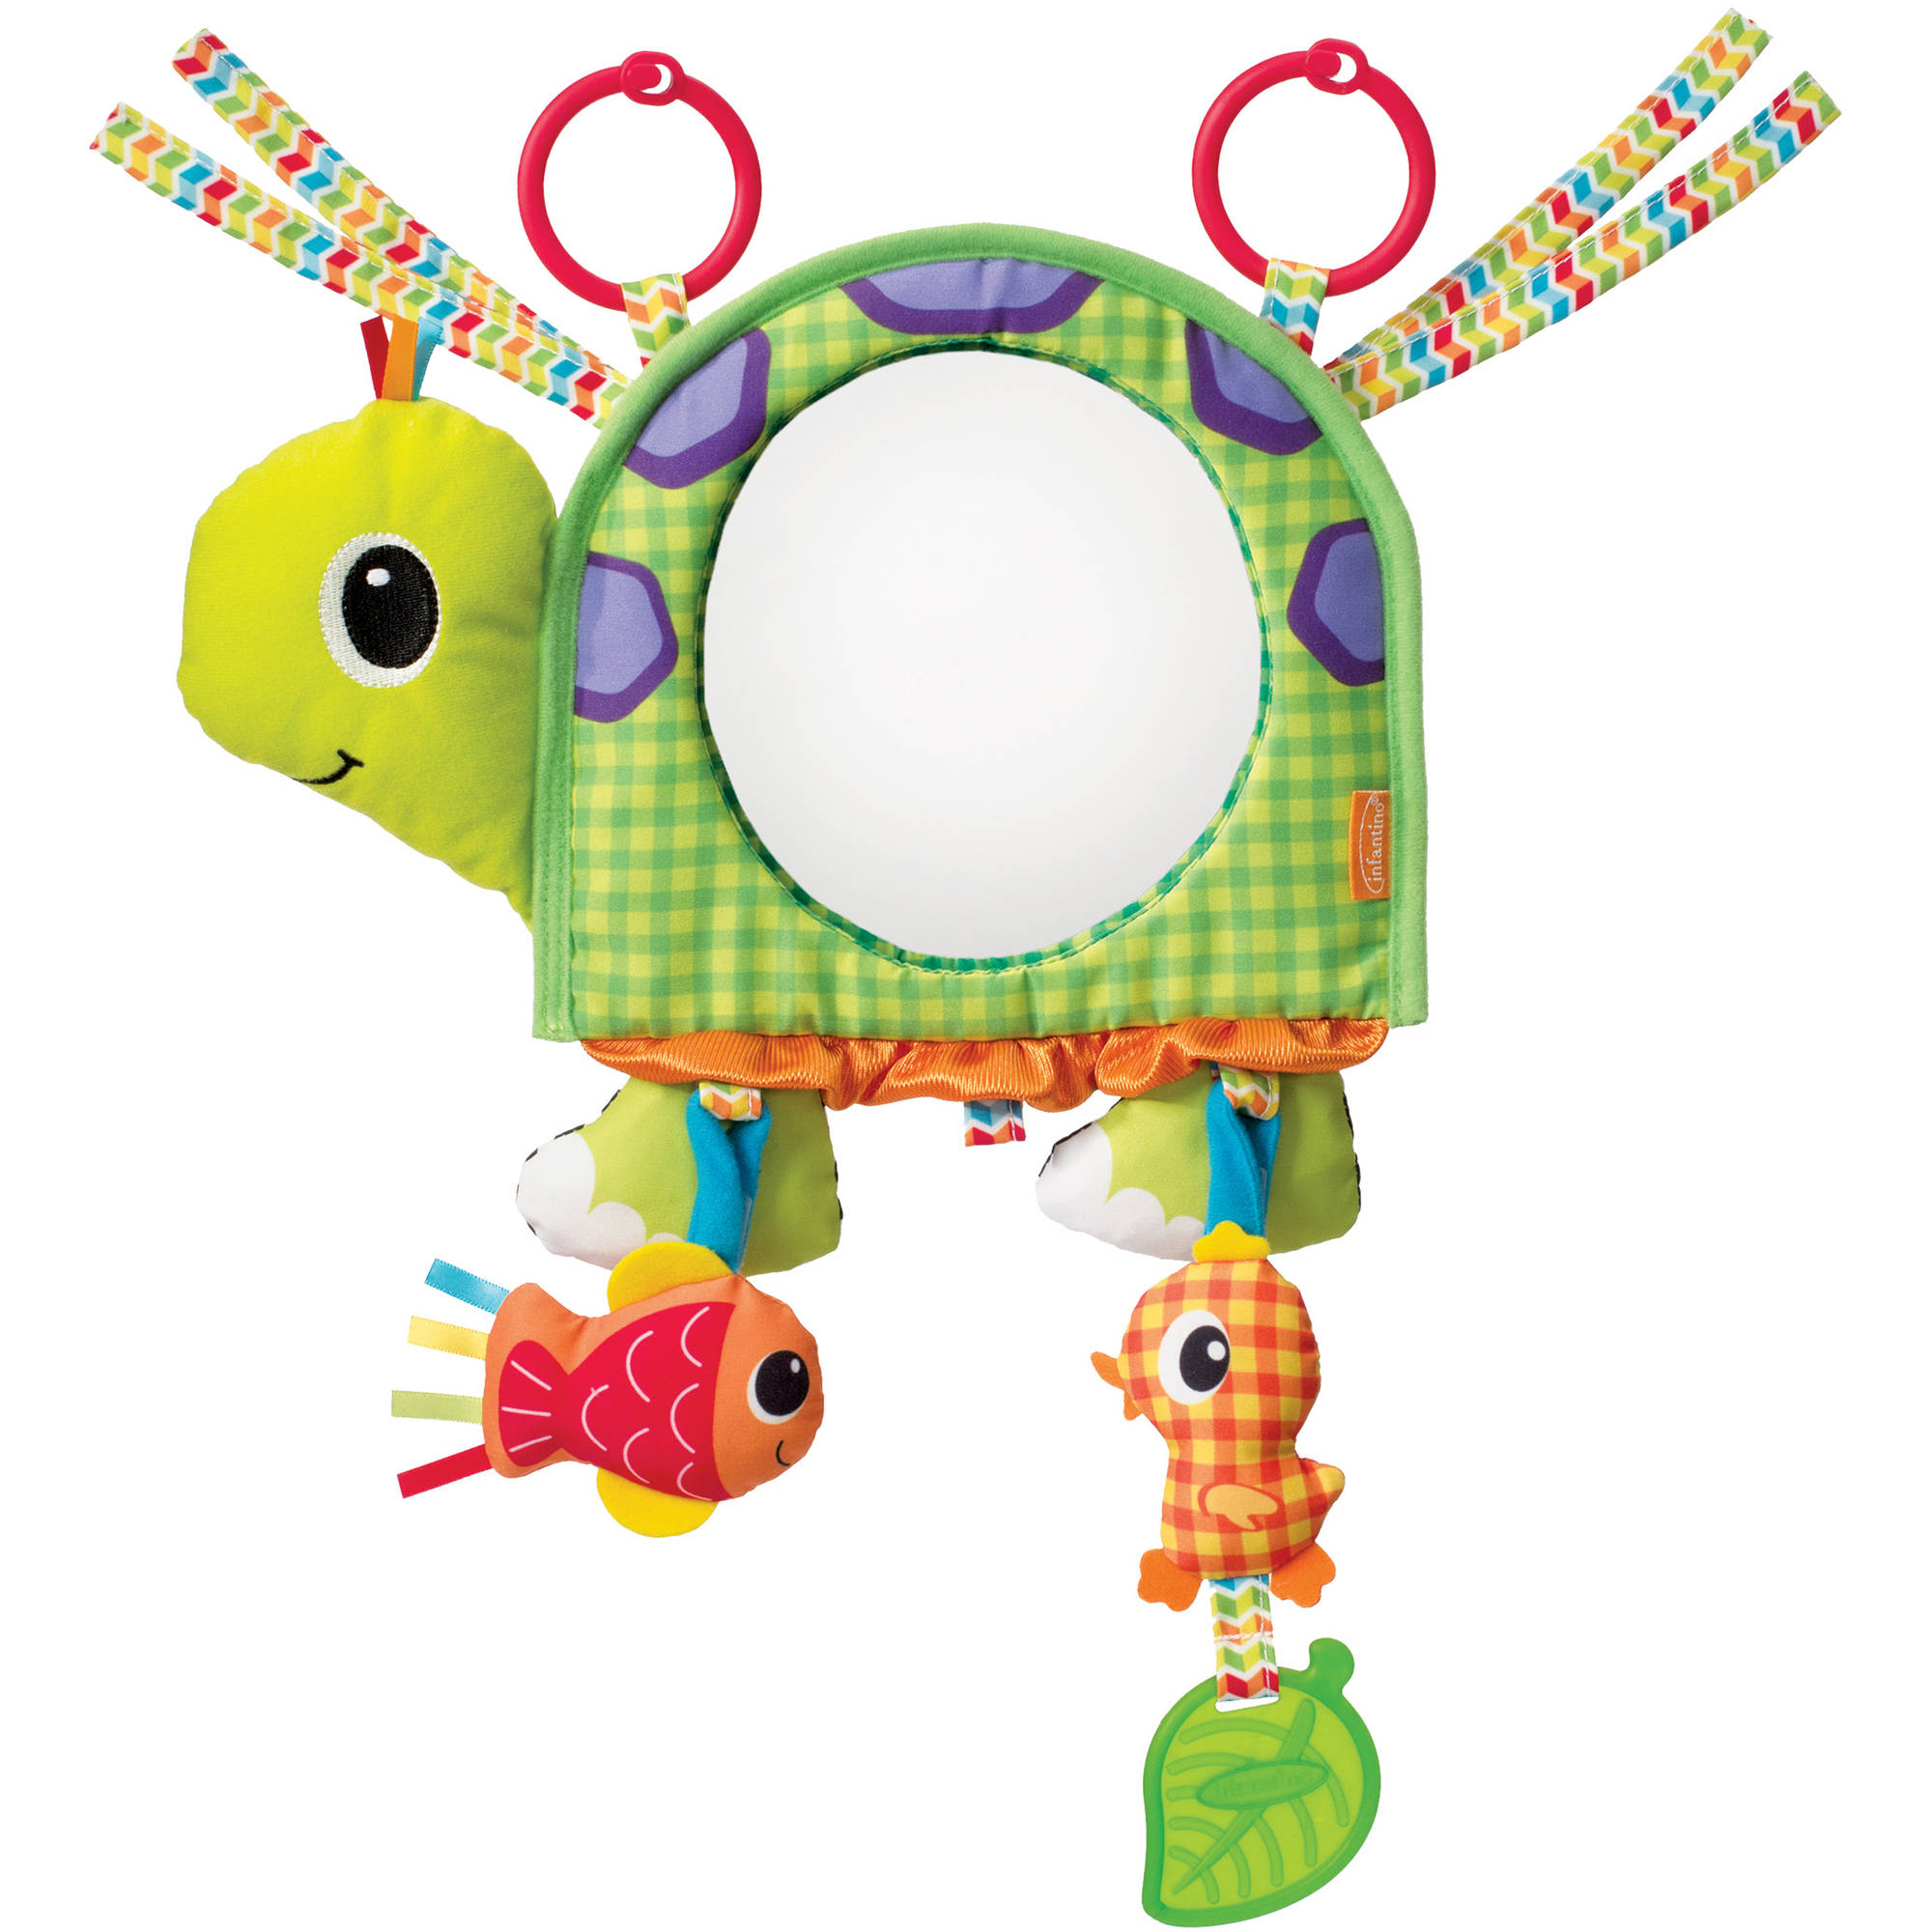 Infantino Topsy Turvy Discover & Play Activity Mirror